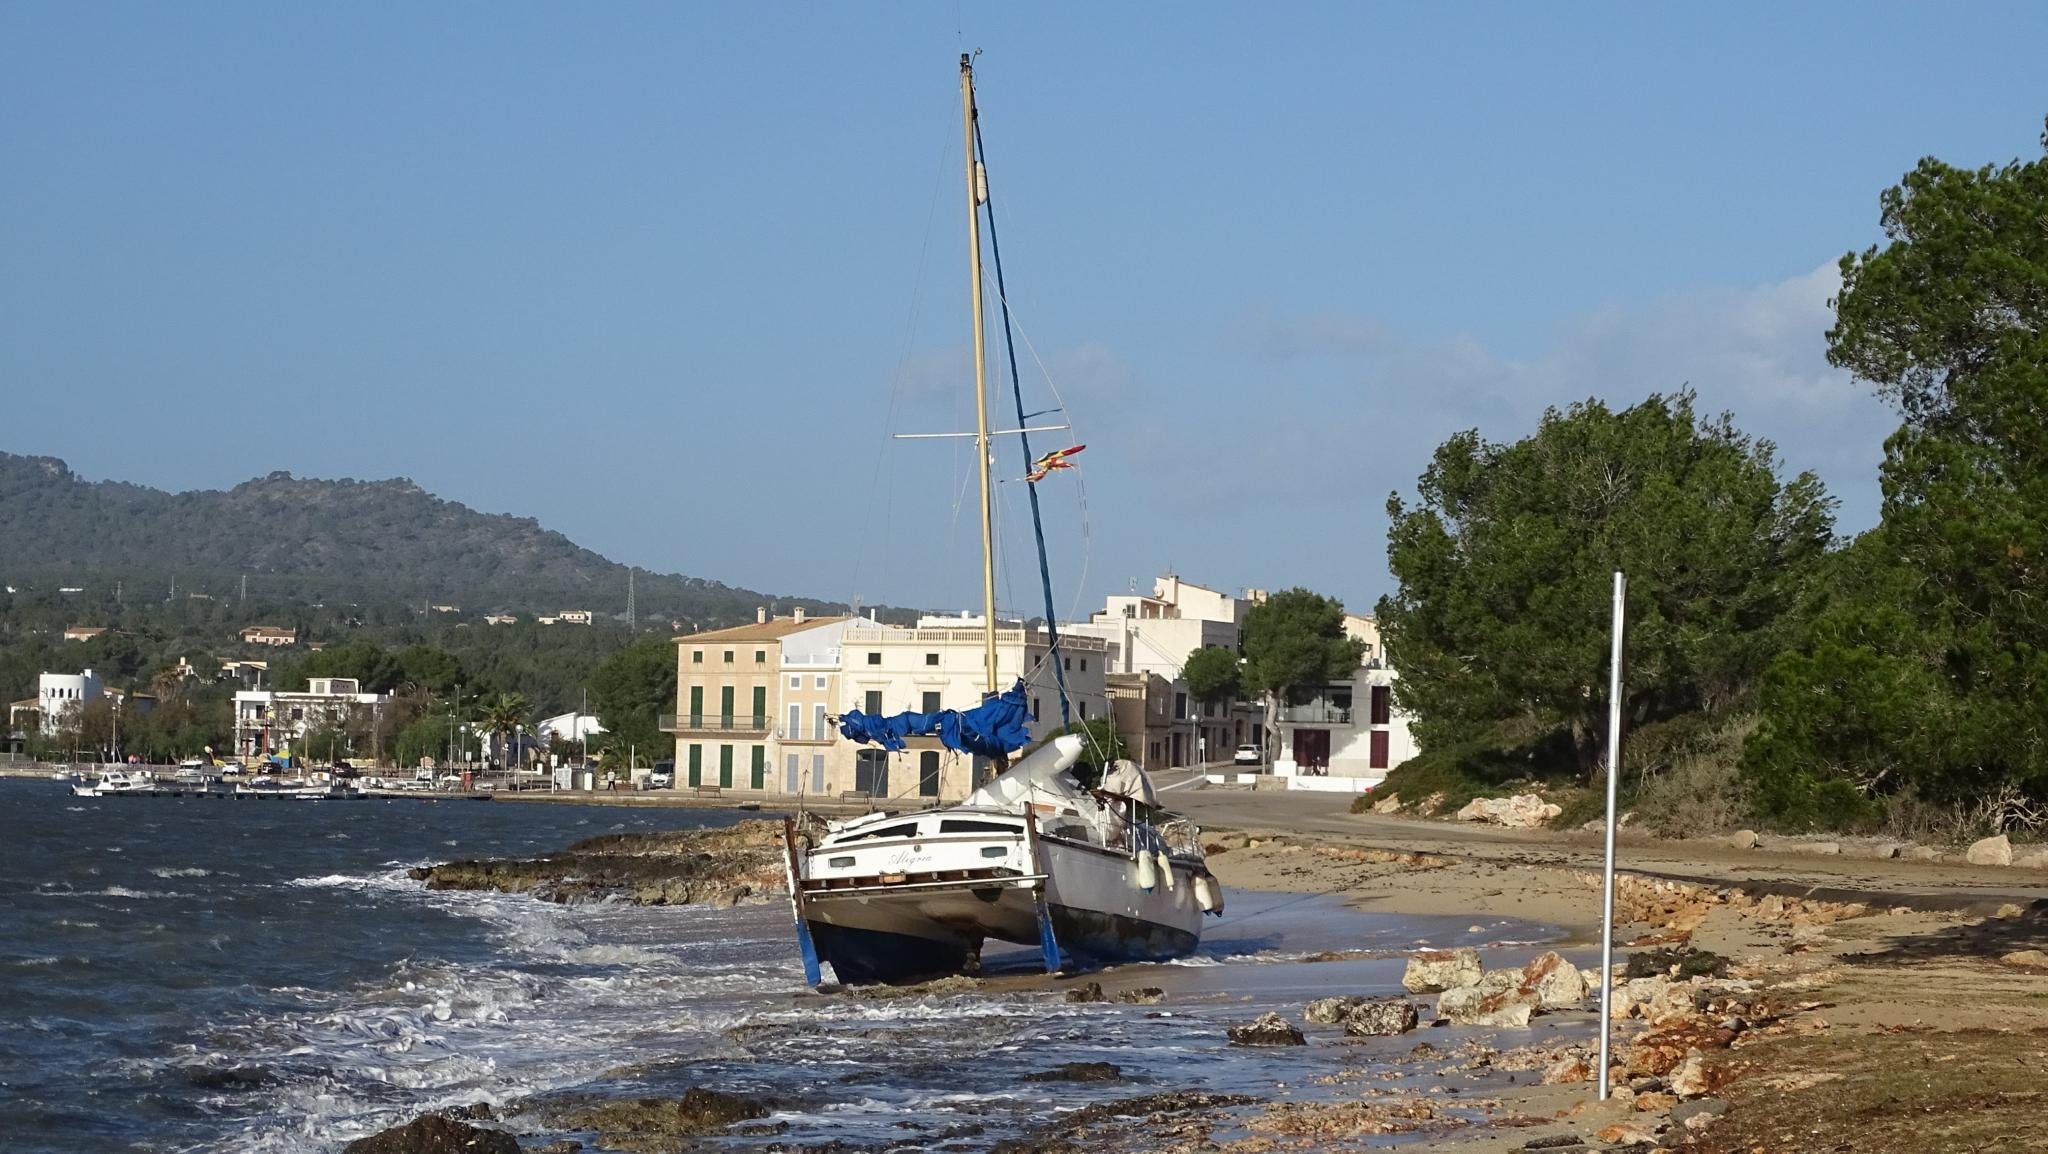 Boats aground in Portocolom